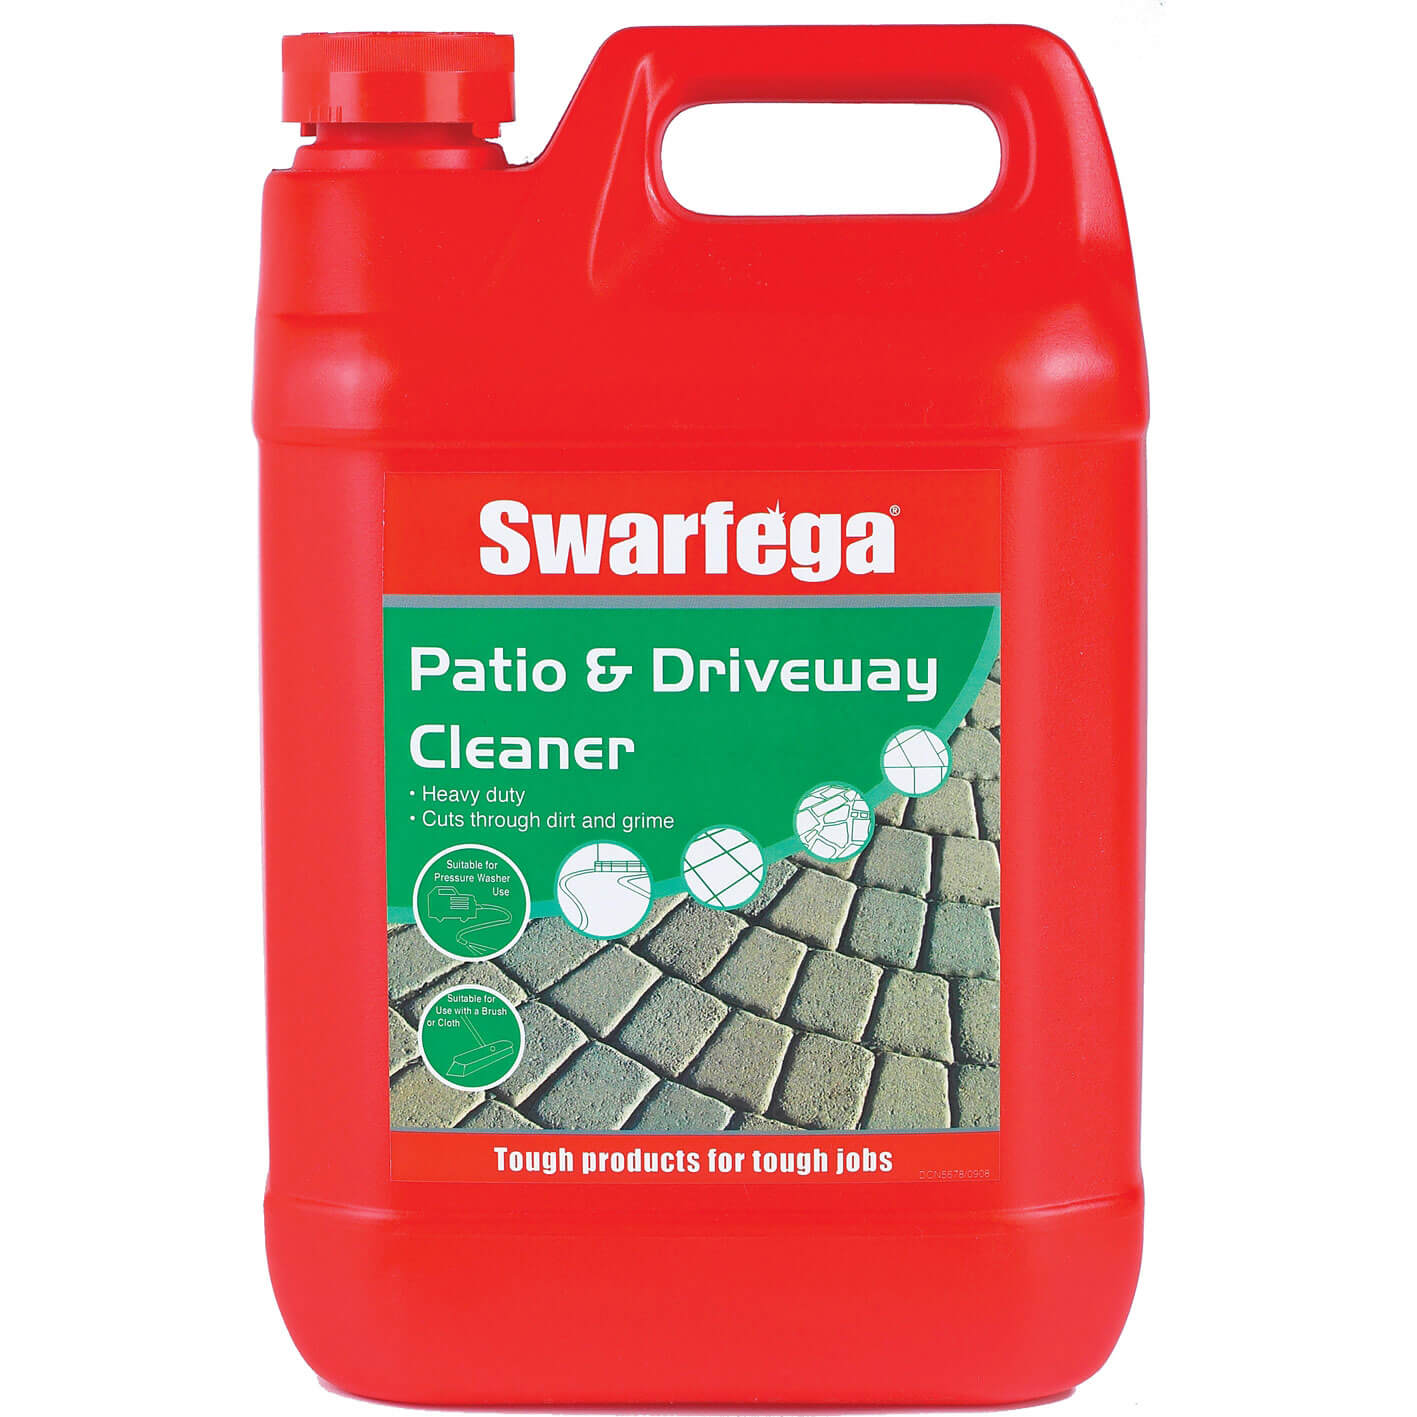 Image of Swarfega Swarfega Patio & Driveway Cleaner 5L